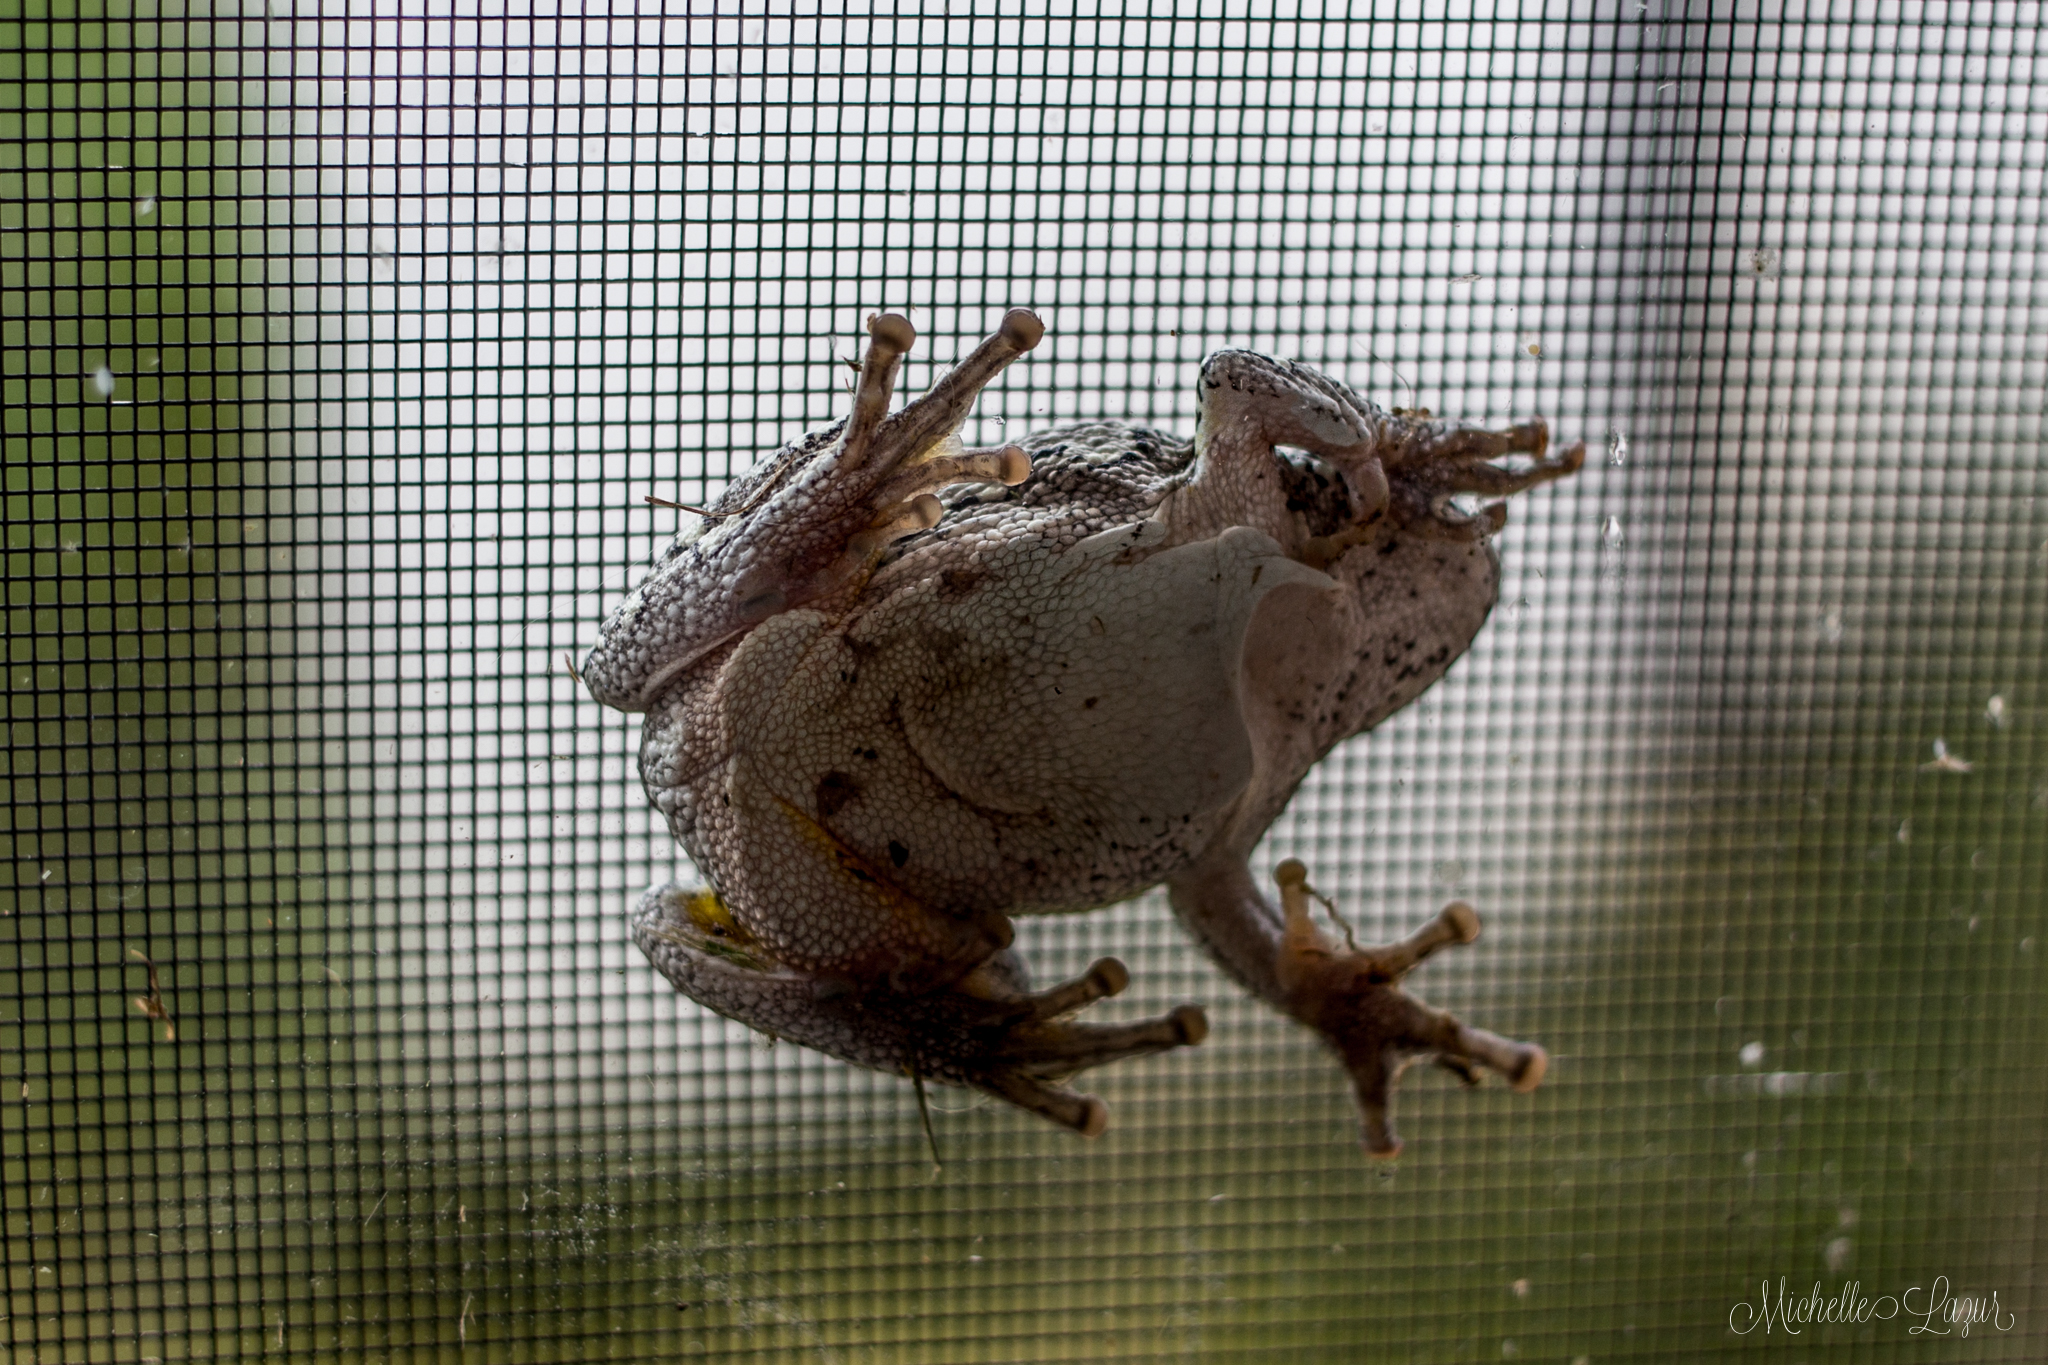 Crazy from wedged between the screen and window of the door. He safely escaped with a little help.